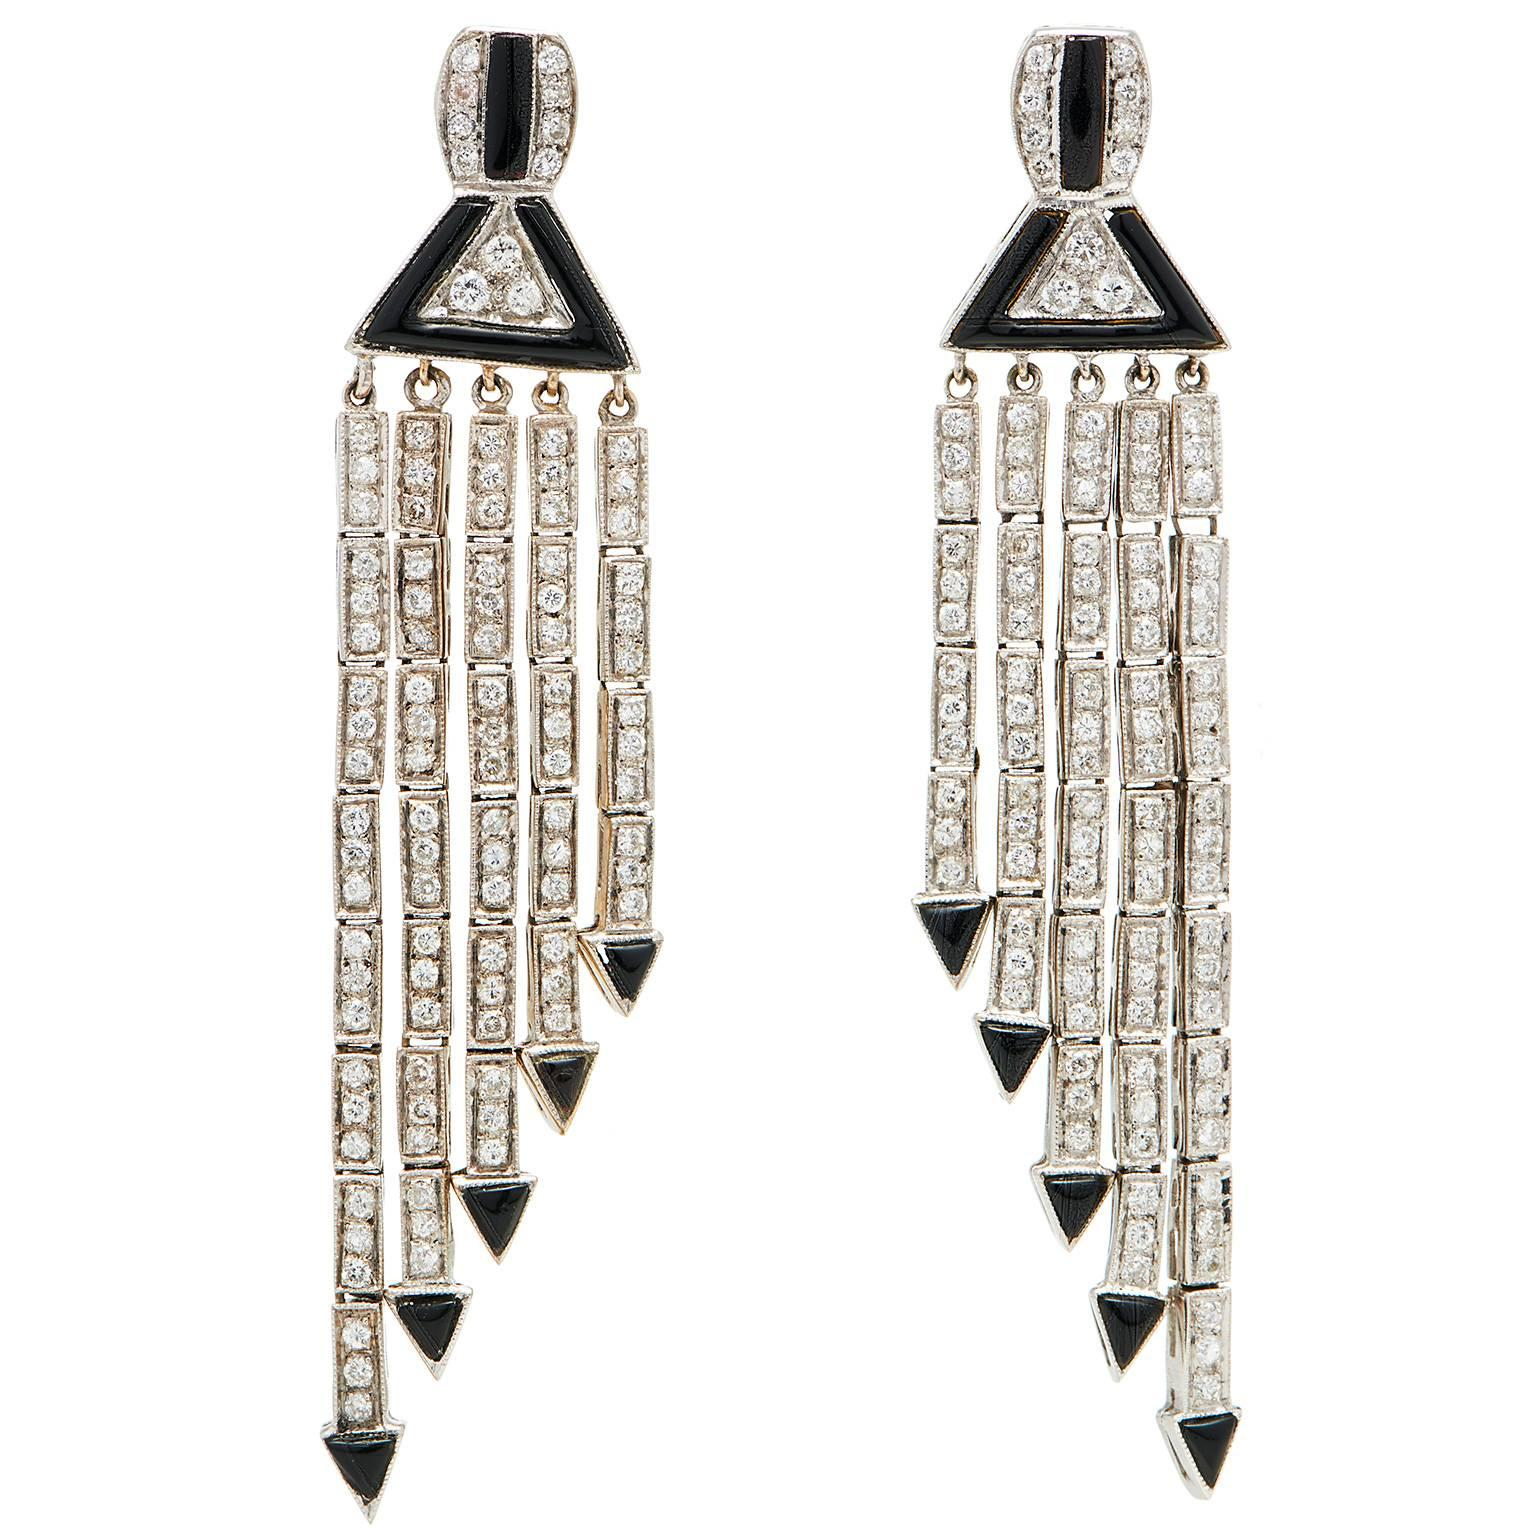 Art Deco Style Faux Diamond yx Jade Earrings For Sale at 1stdibs